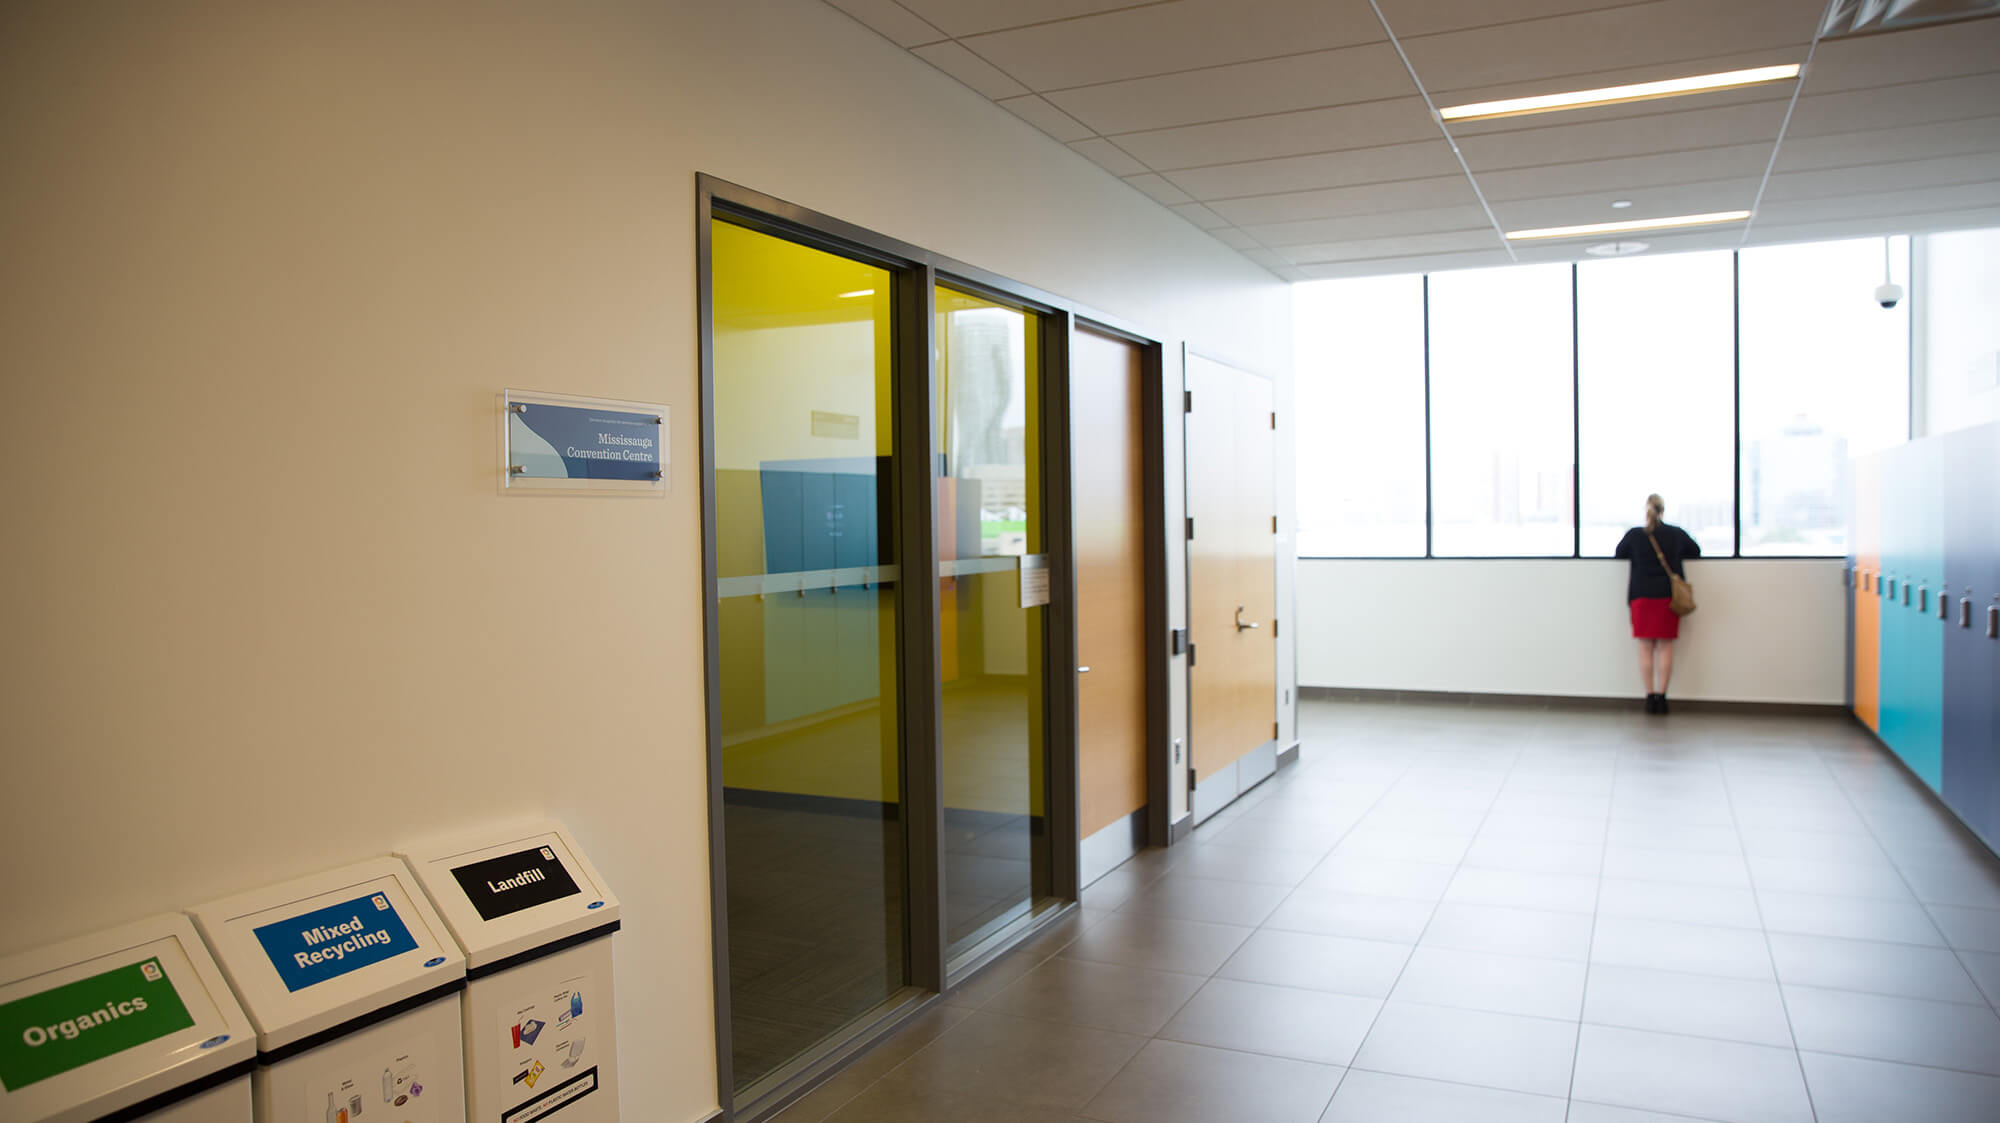 A bright hallway with sliding glass doors ouside a Group Study Room